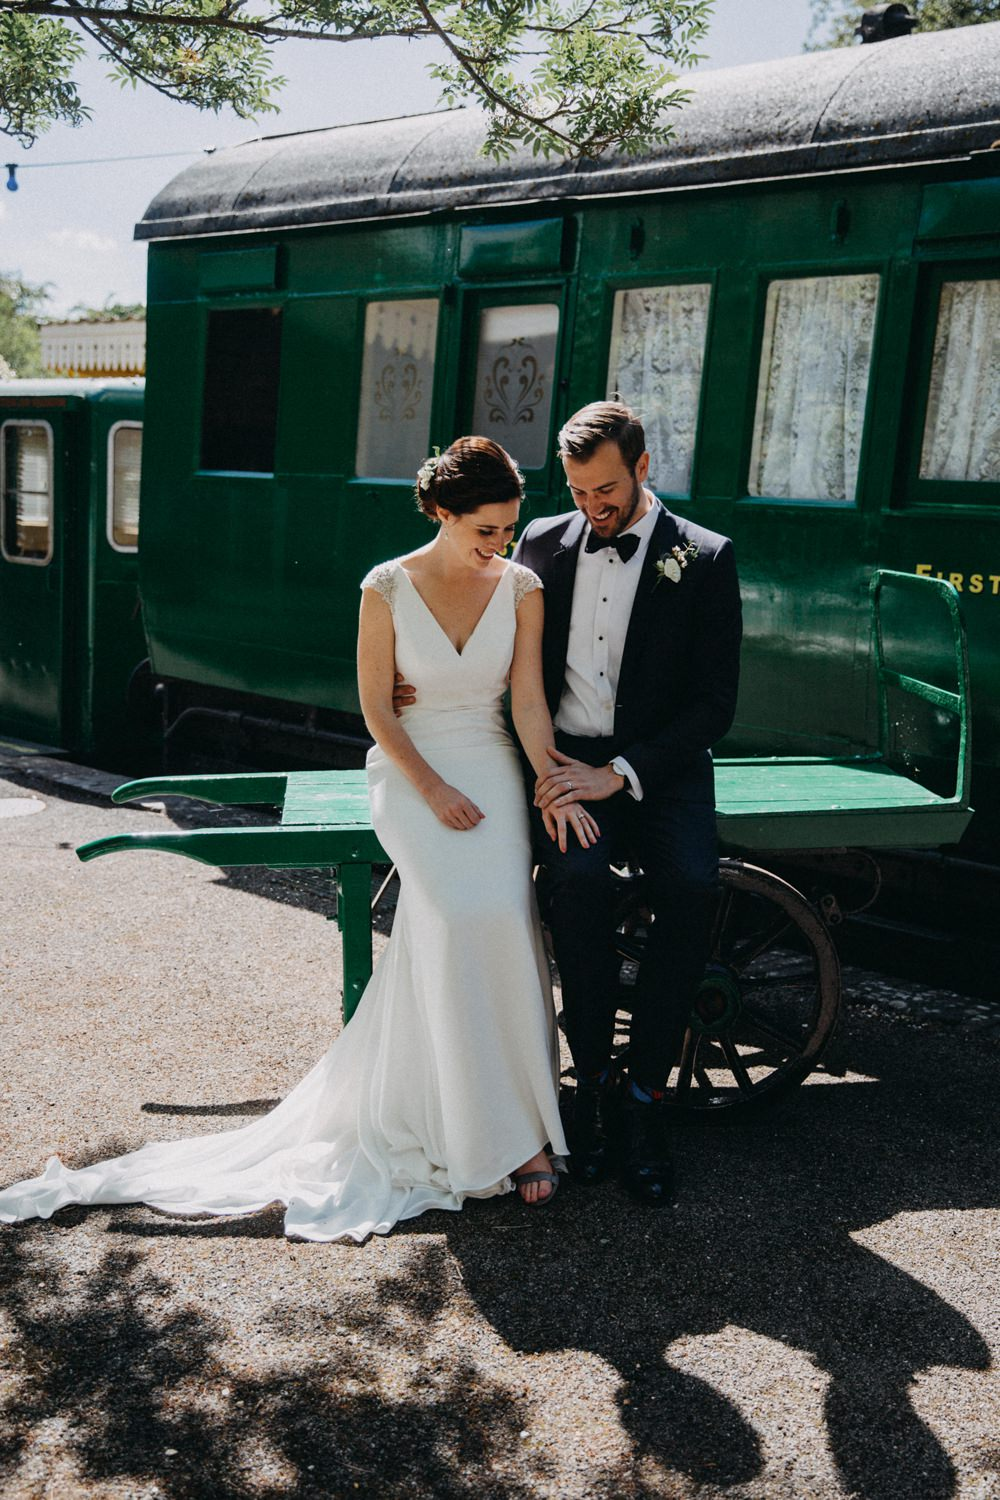 Groom Suit Dark Blue Tux Bow Tie Horsebridge Station Wedding Emily Grace Photography